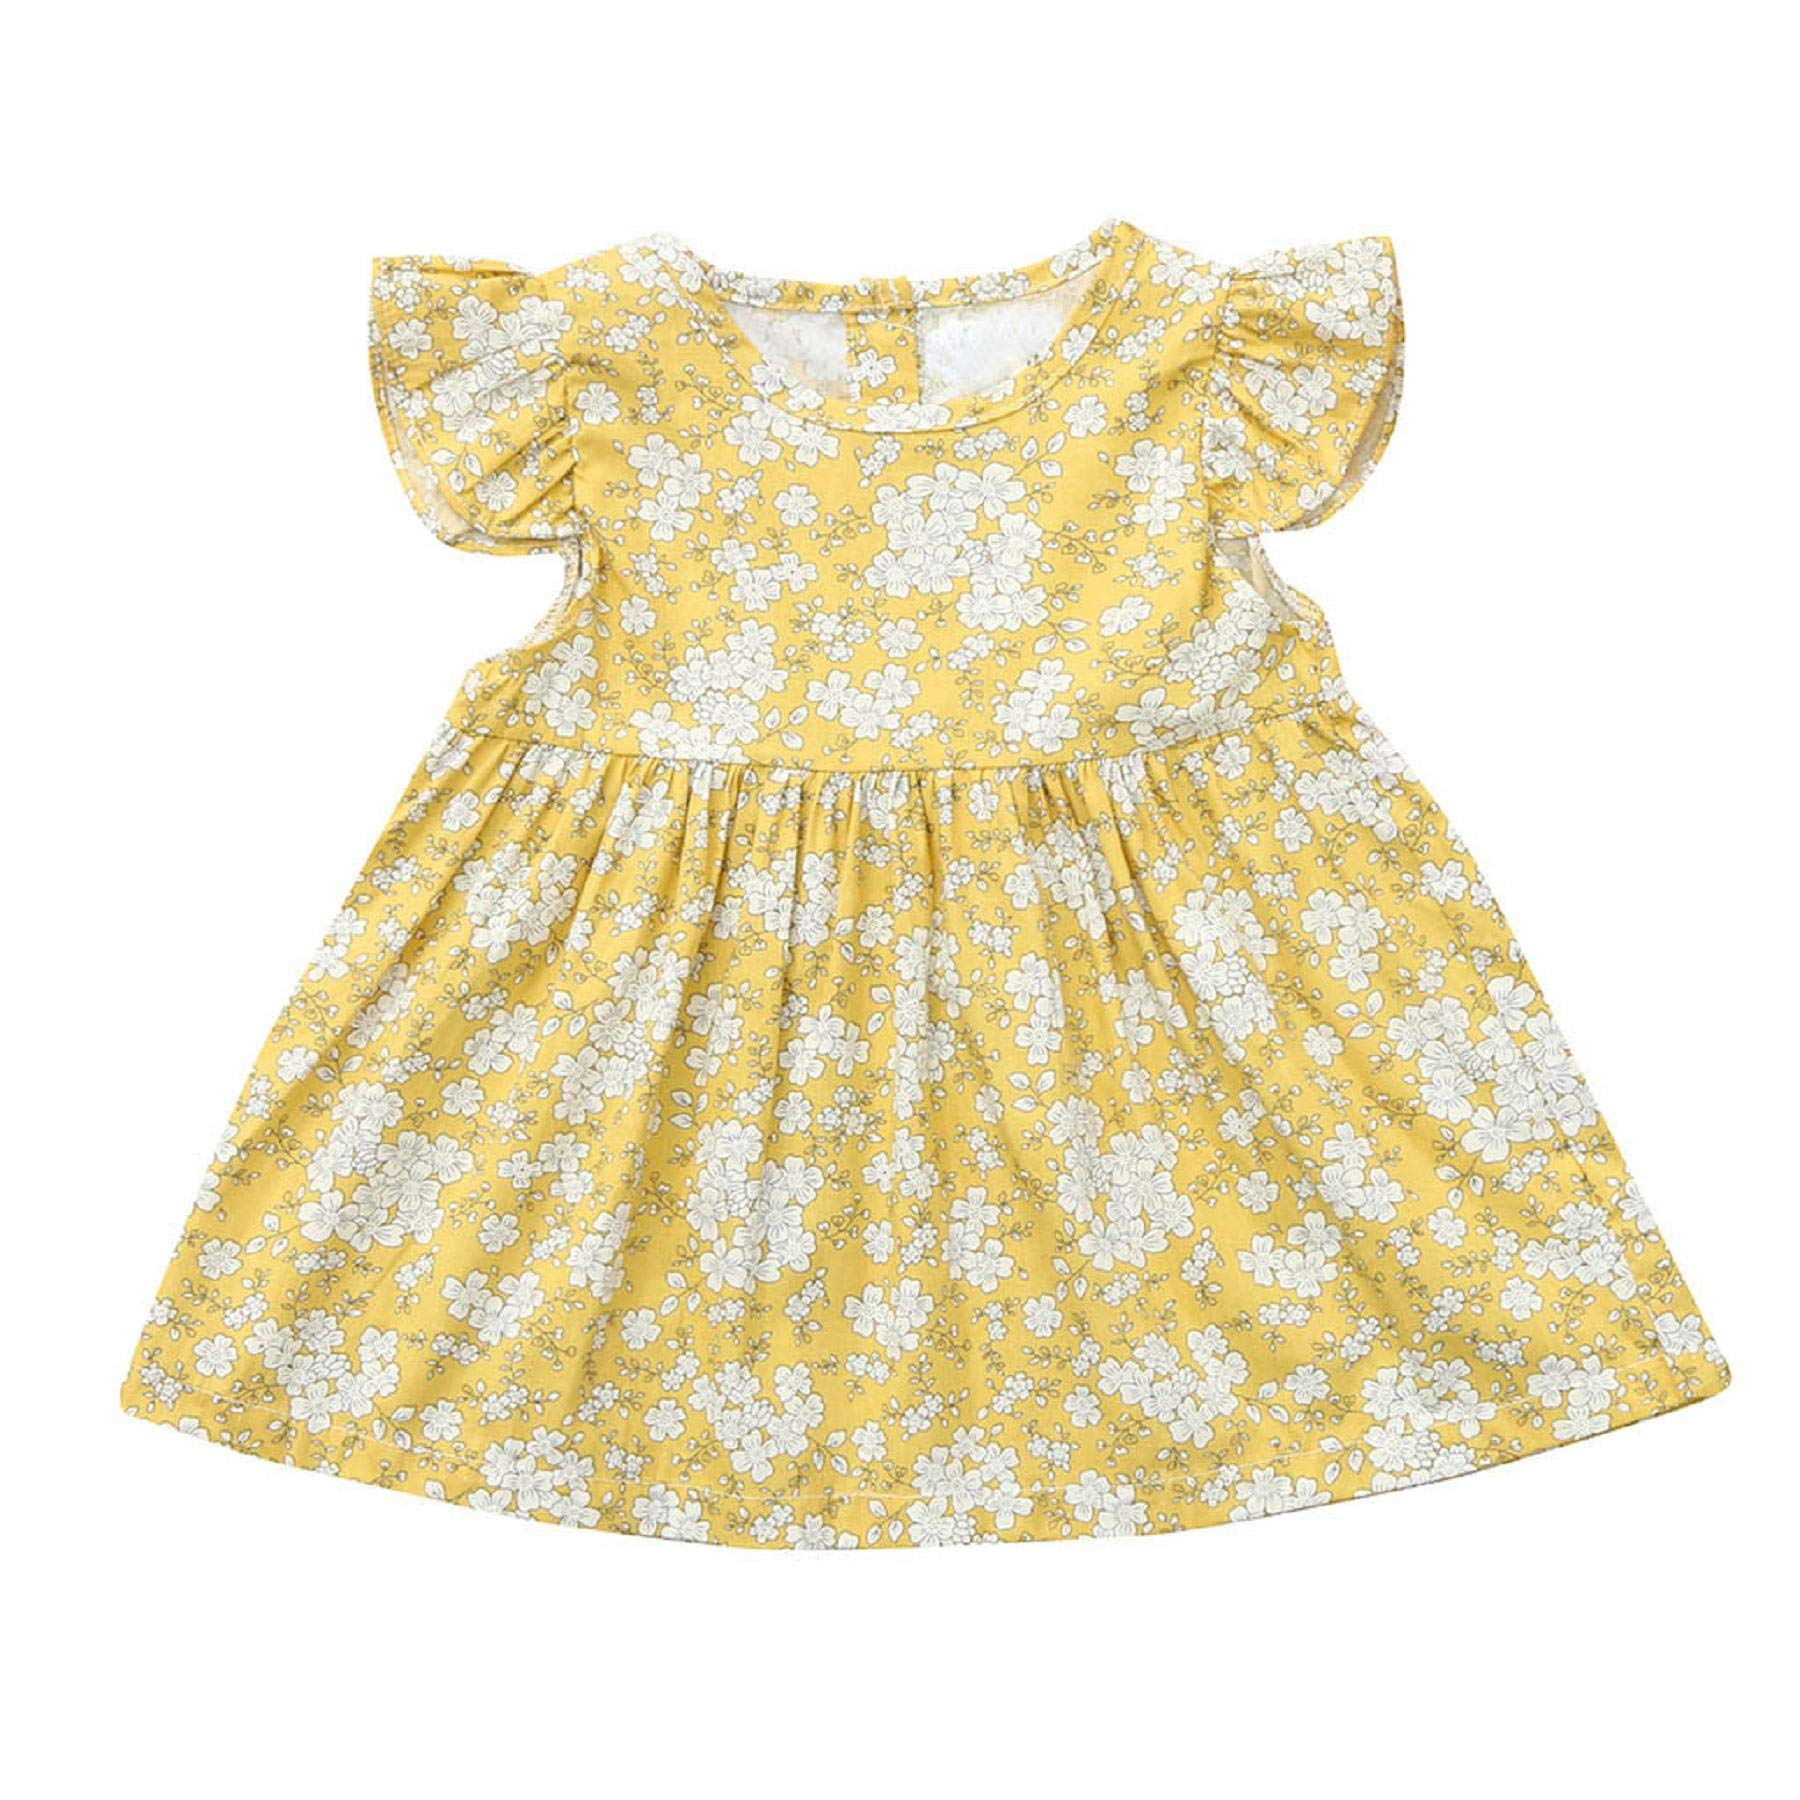 Zainafacai Toddler Baby Girl Summer Dresses,Floral Plaid Backless Ruffle Fly Sleeve Princess Dress Skirts Clothes Yellow